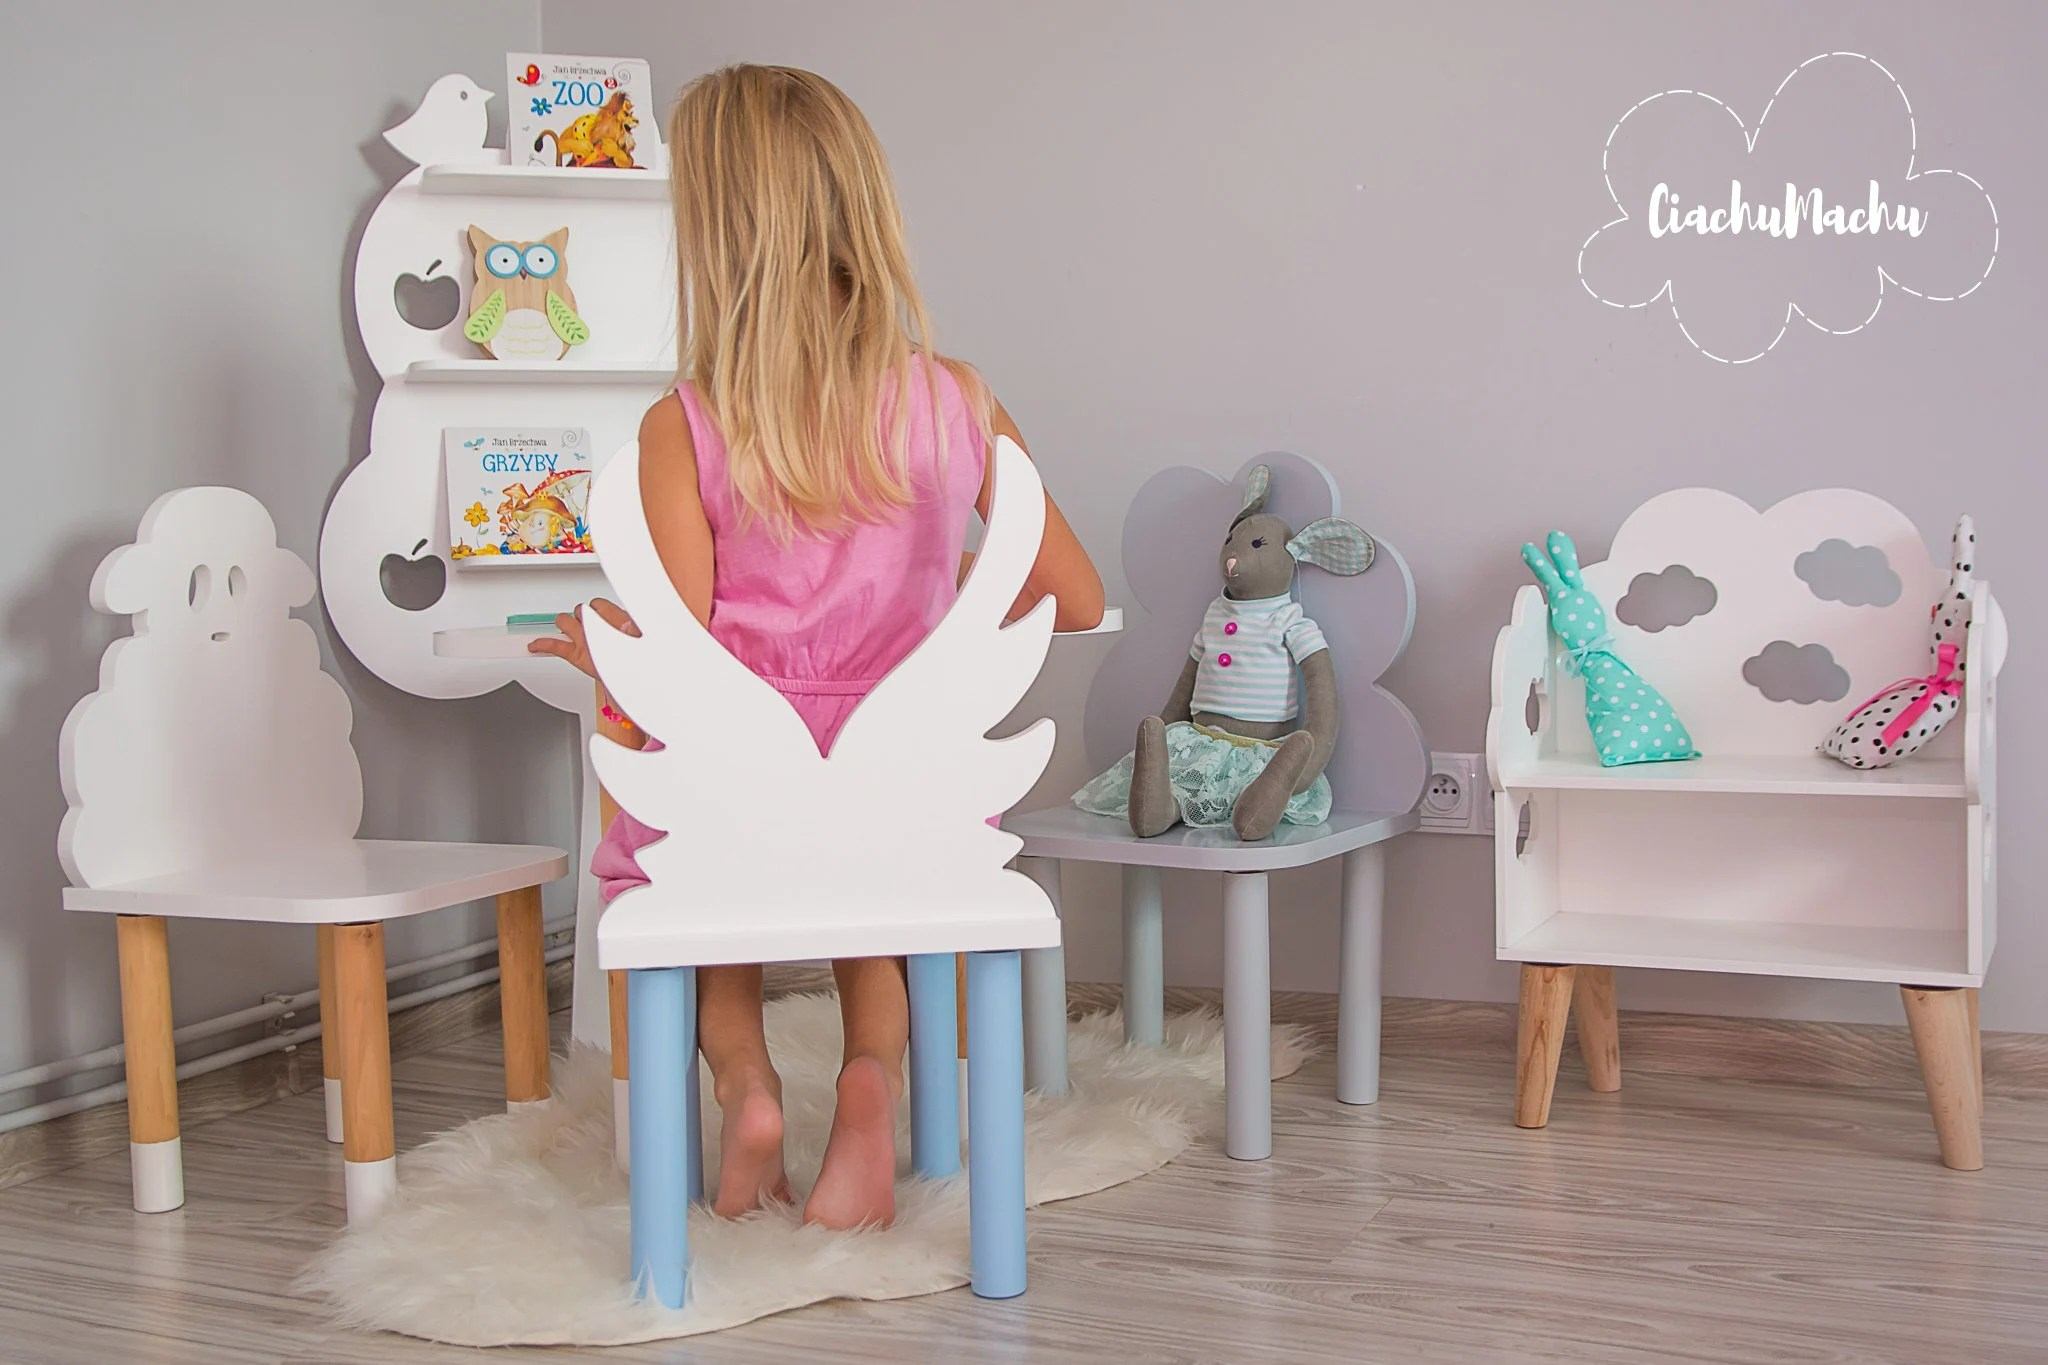 chair for toddler girl thinking from blues clues etsy angel kids furniture gift baby decor wooden